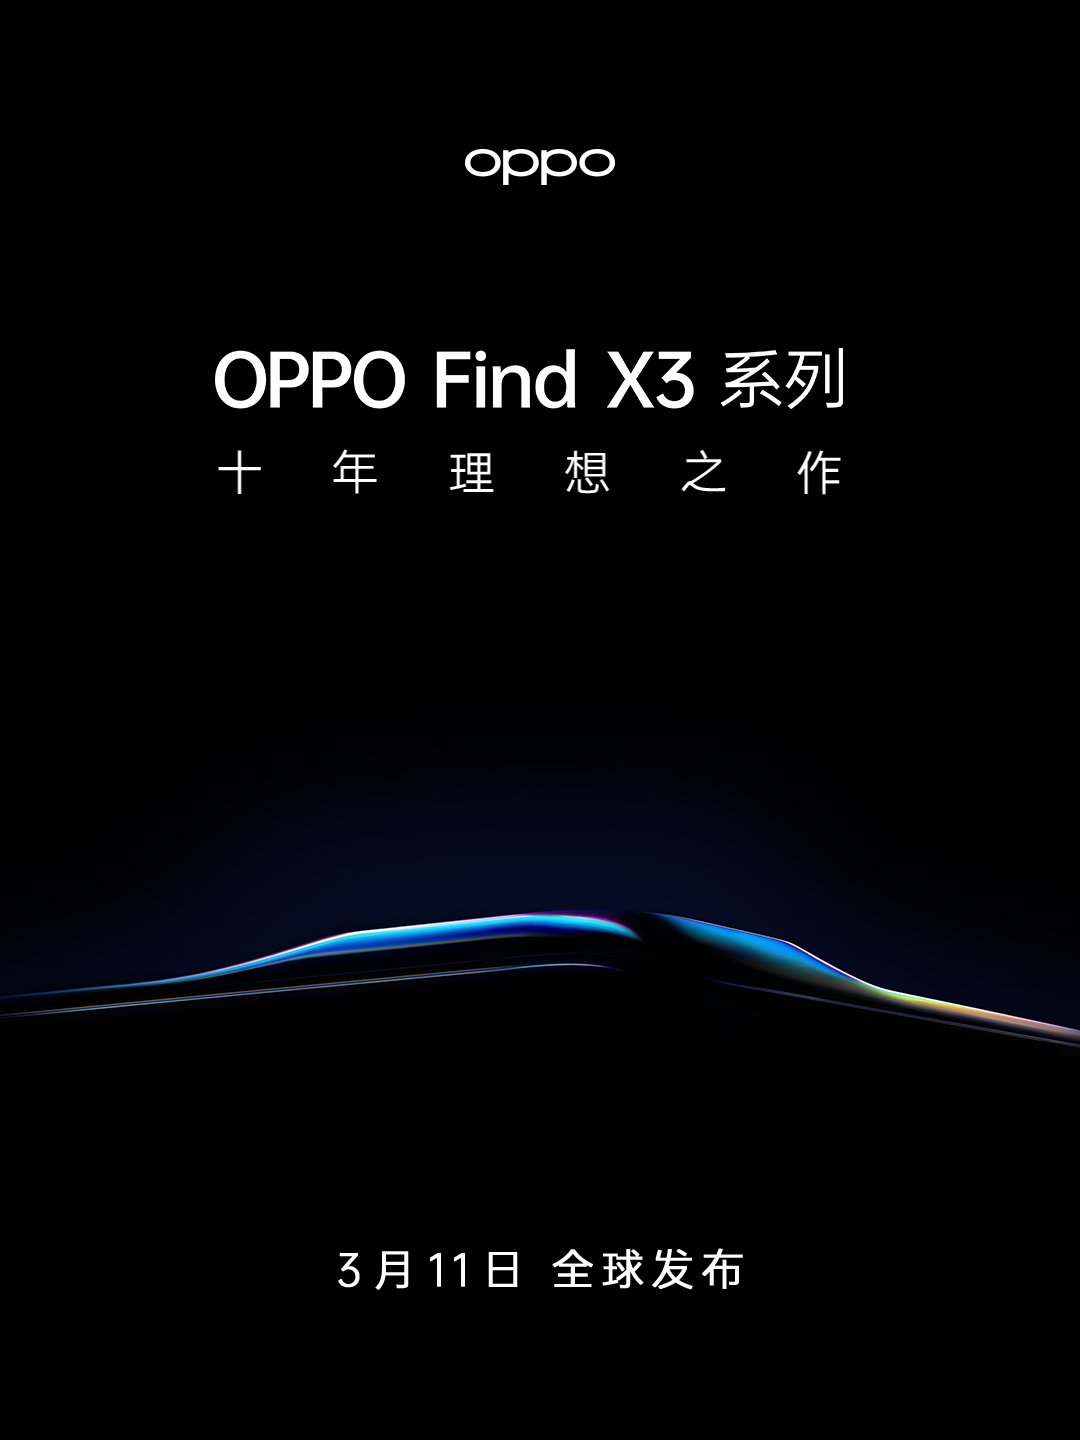 OPPO Find X3 series launch date is March 11